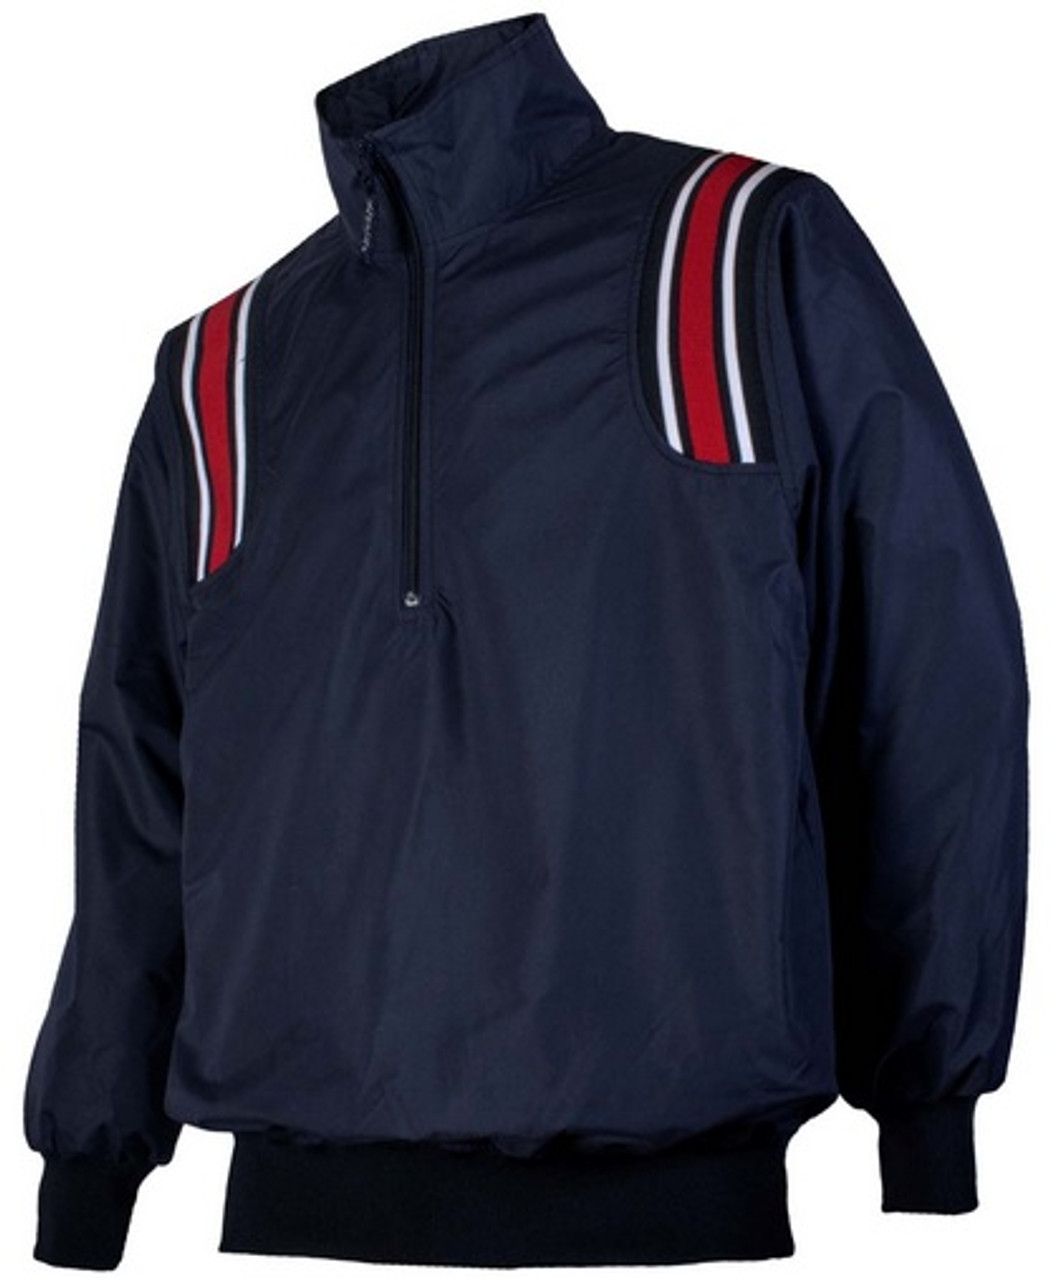 Illinois IHSA Honig's Navy Umpire Pullover with Red Trim